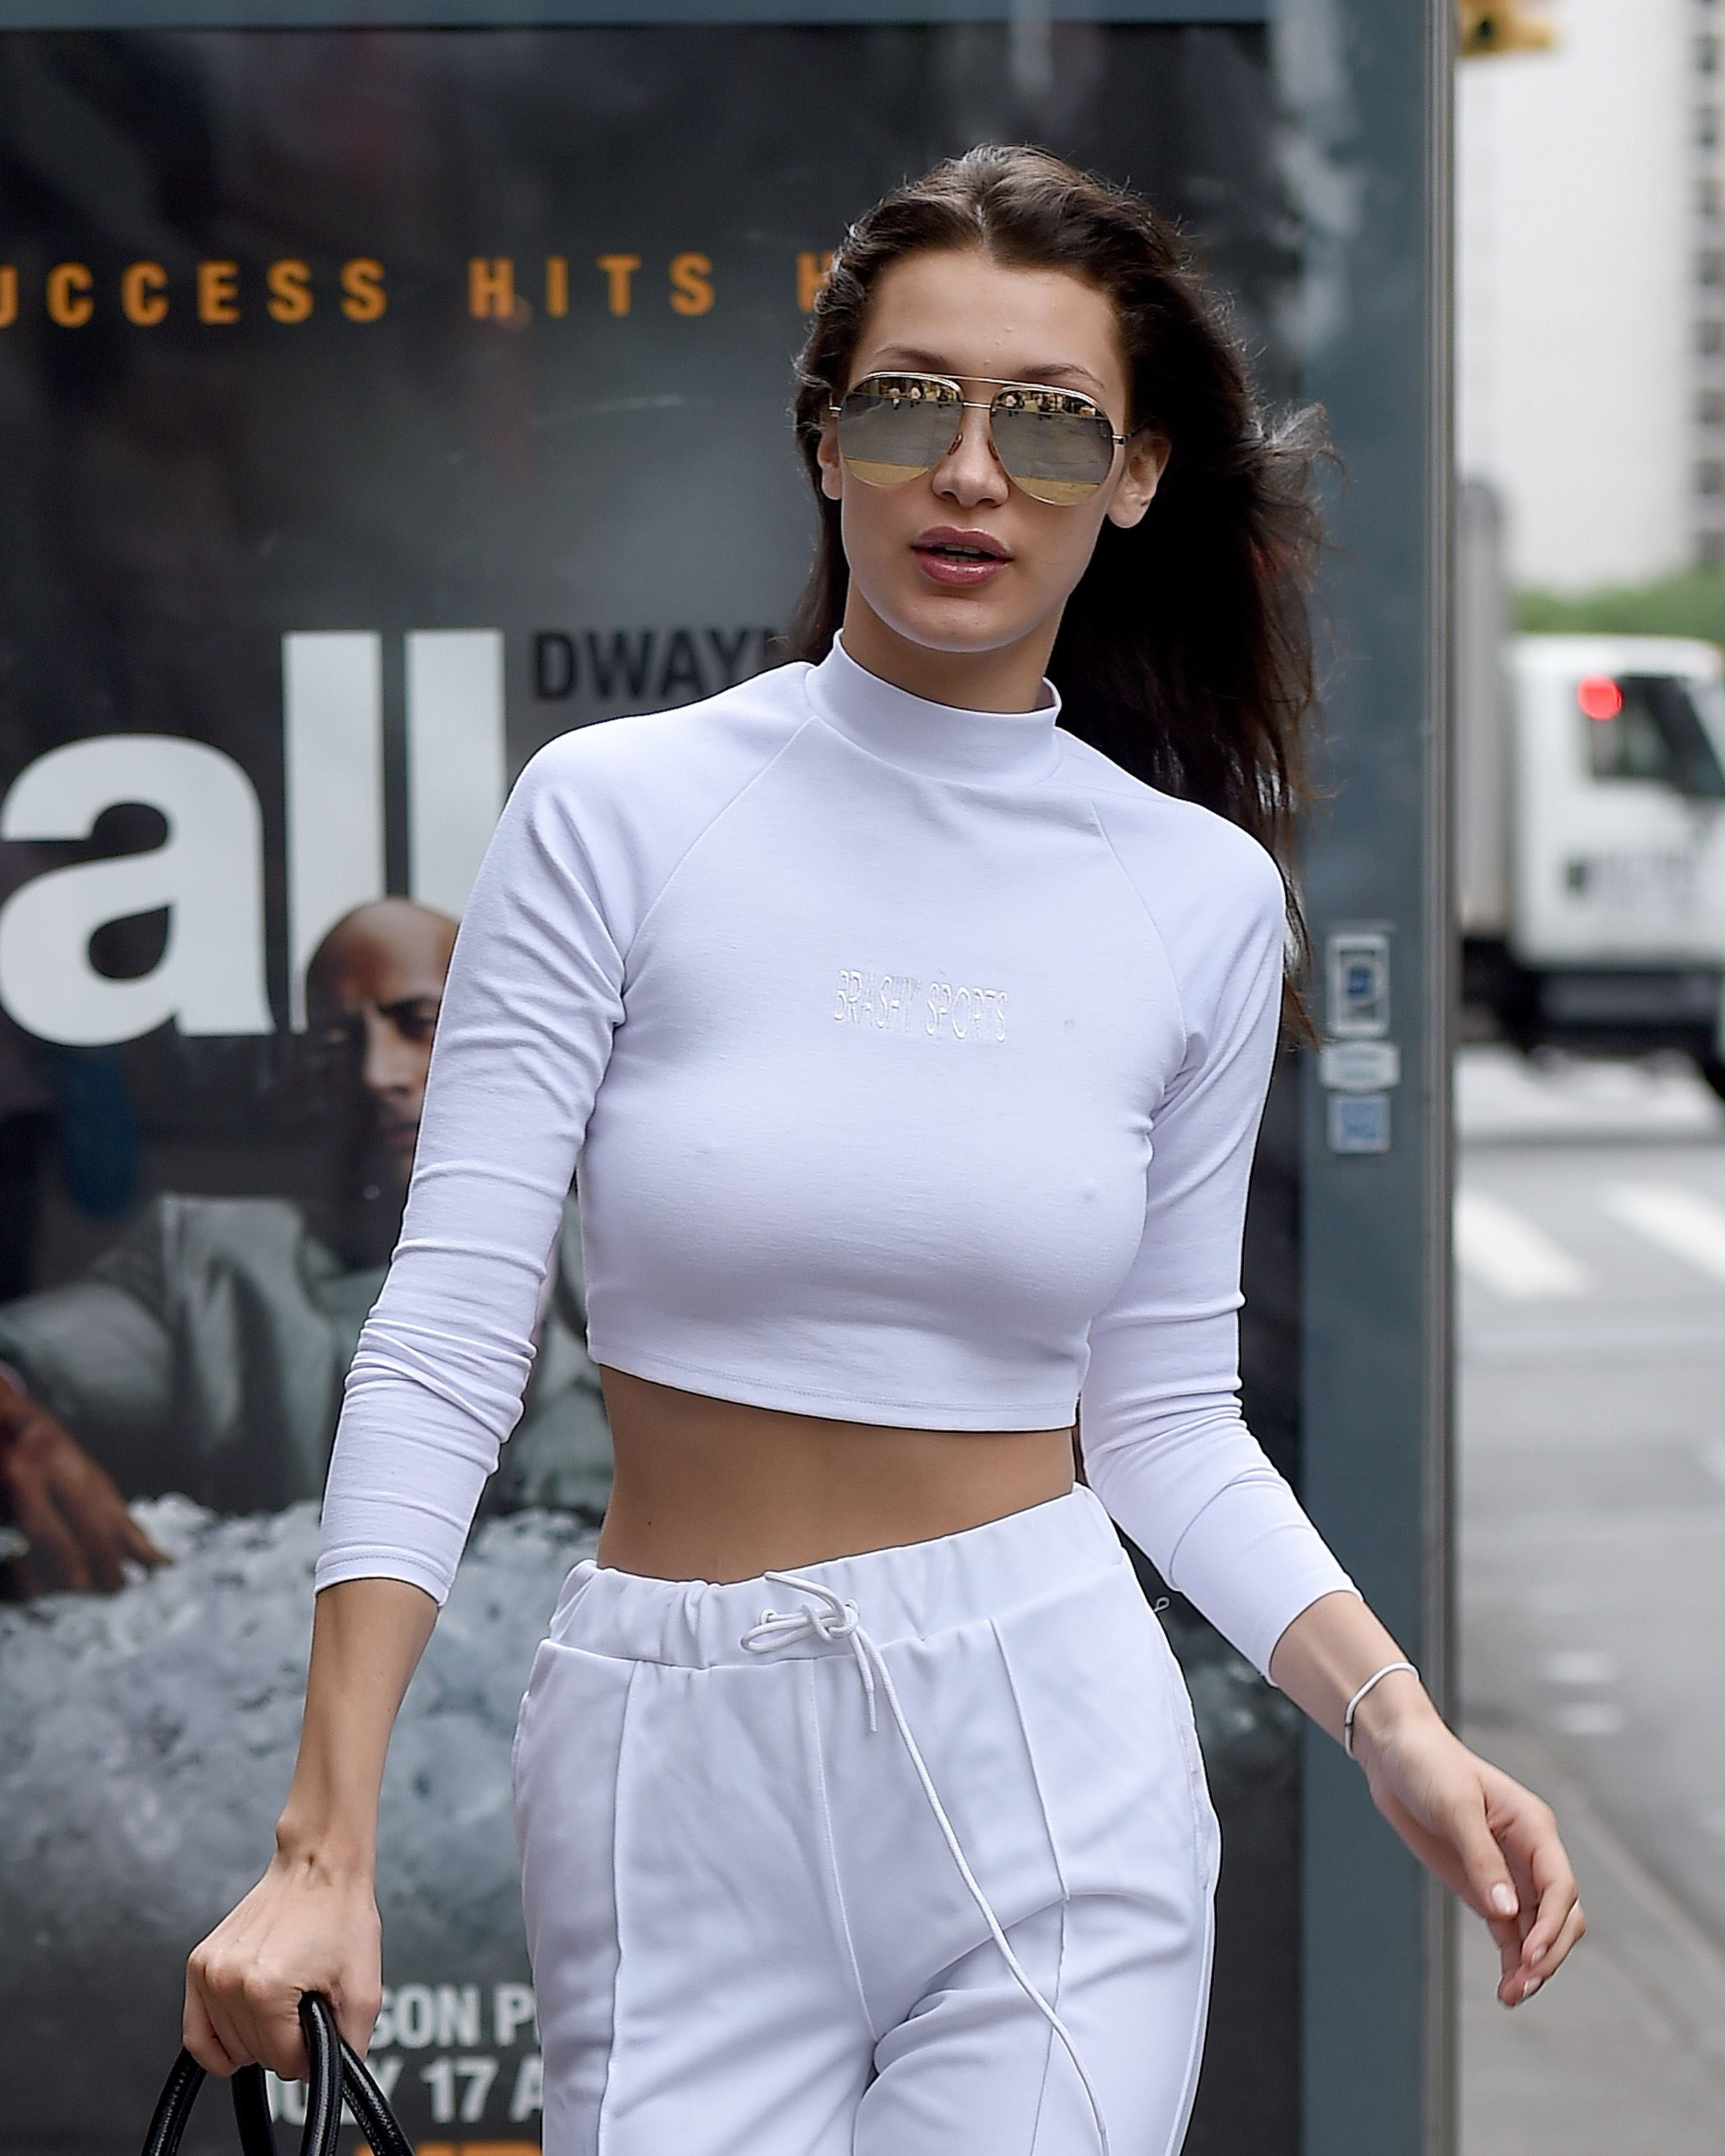 Sexy Pics Of Bella Hadid